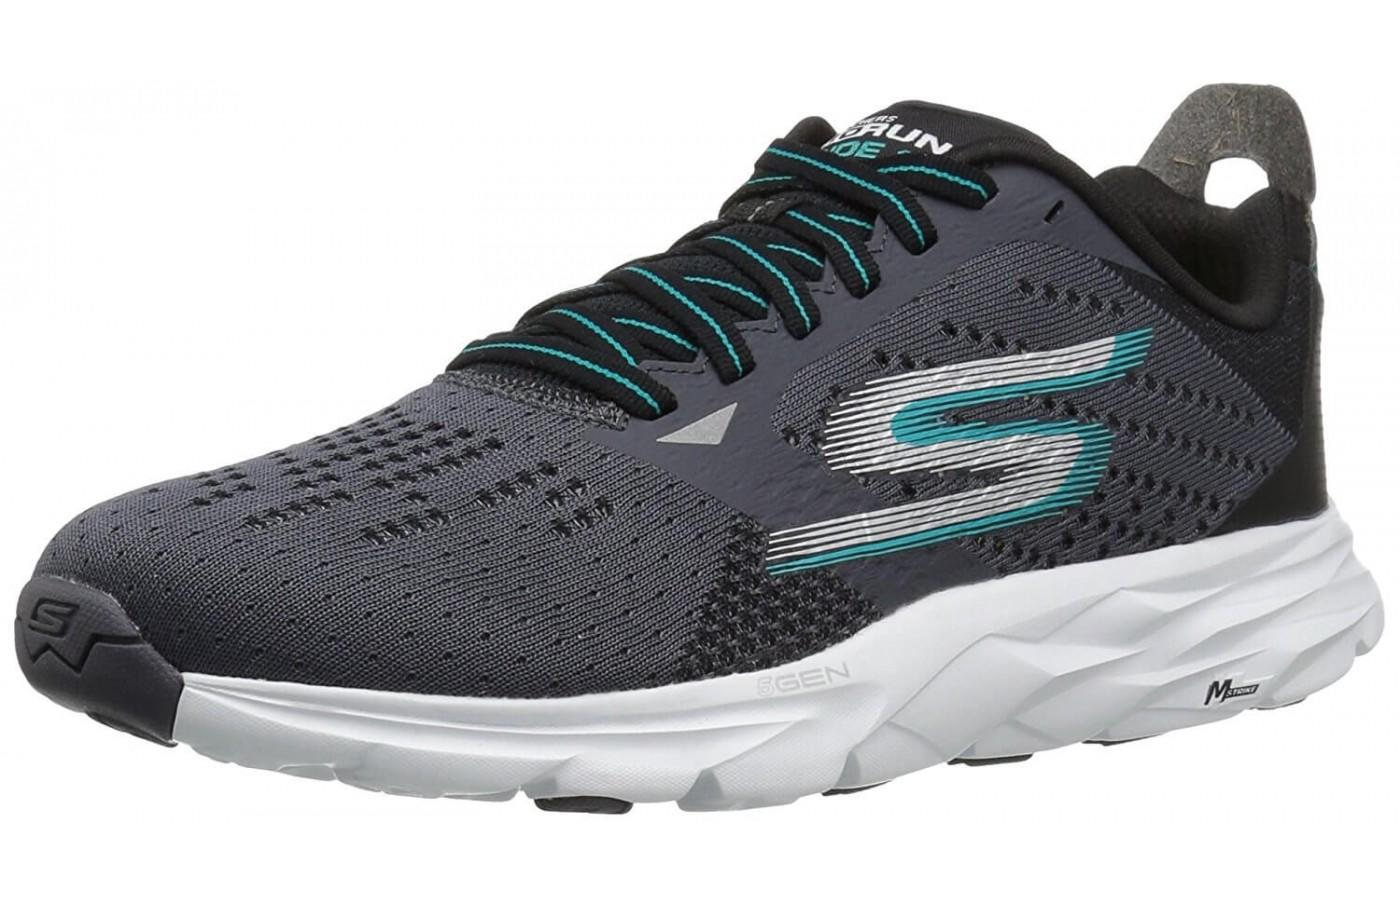 the Skecher GOrun Ride 6 is a comfortable and breathable running shoe